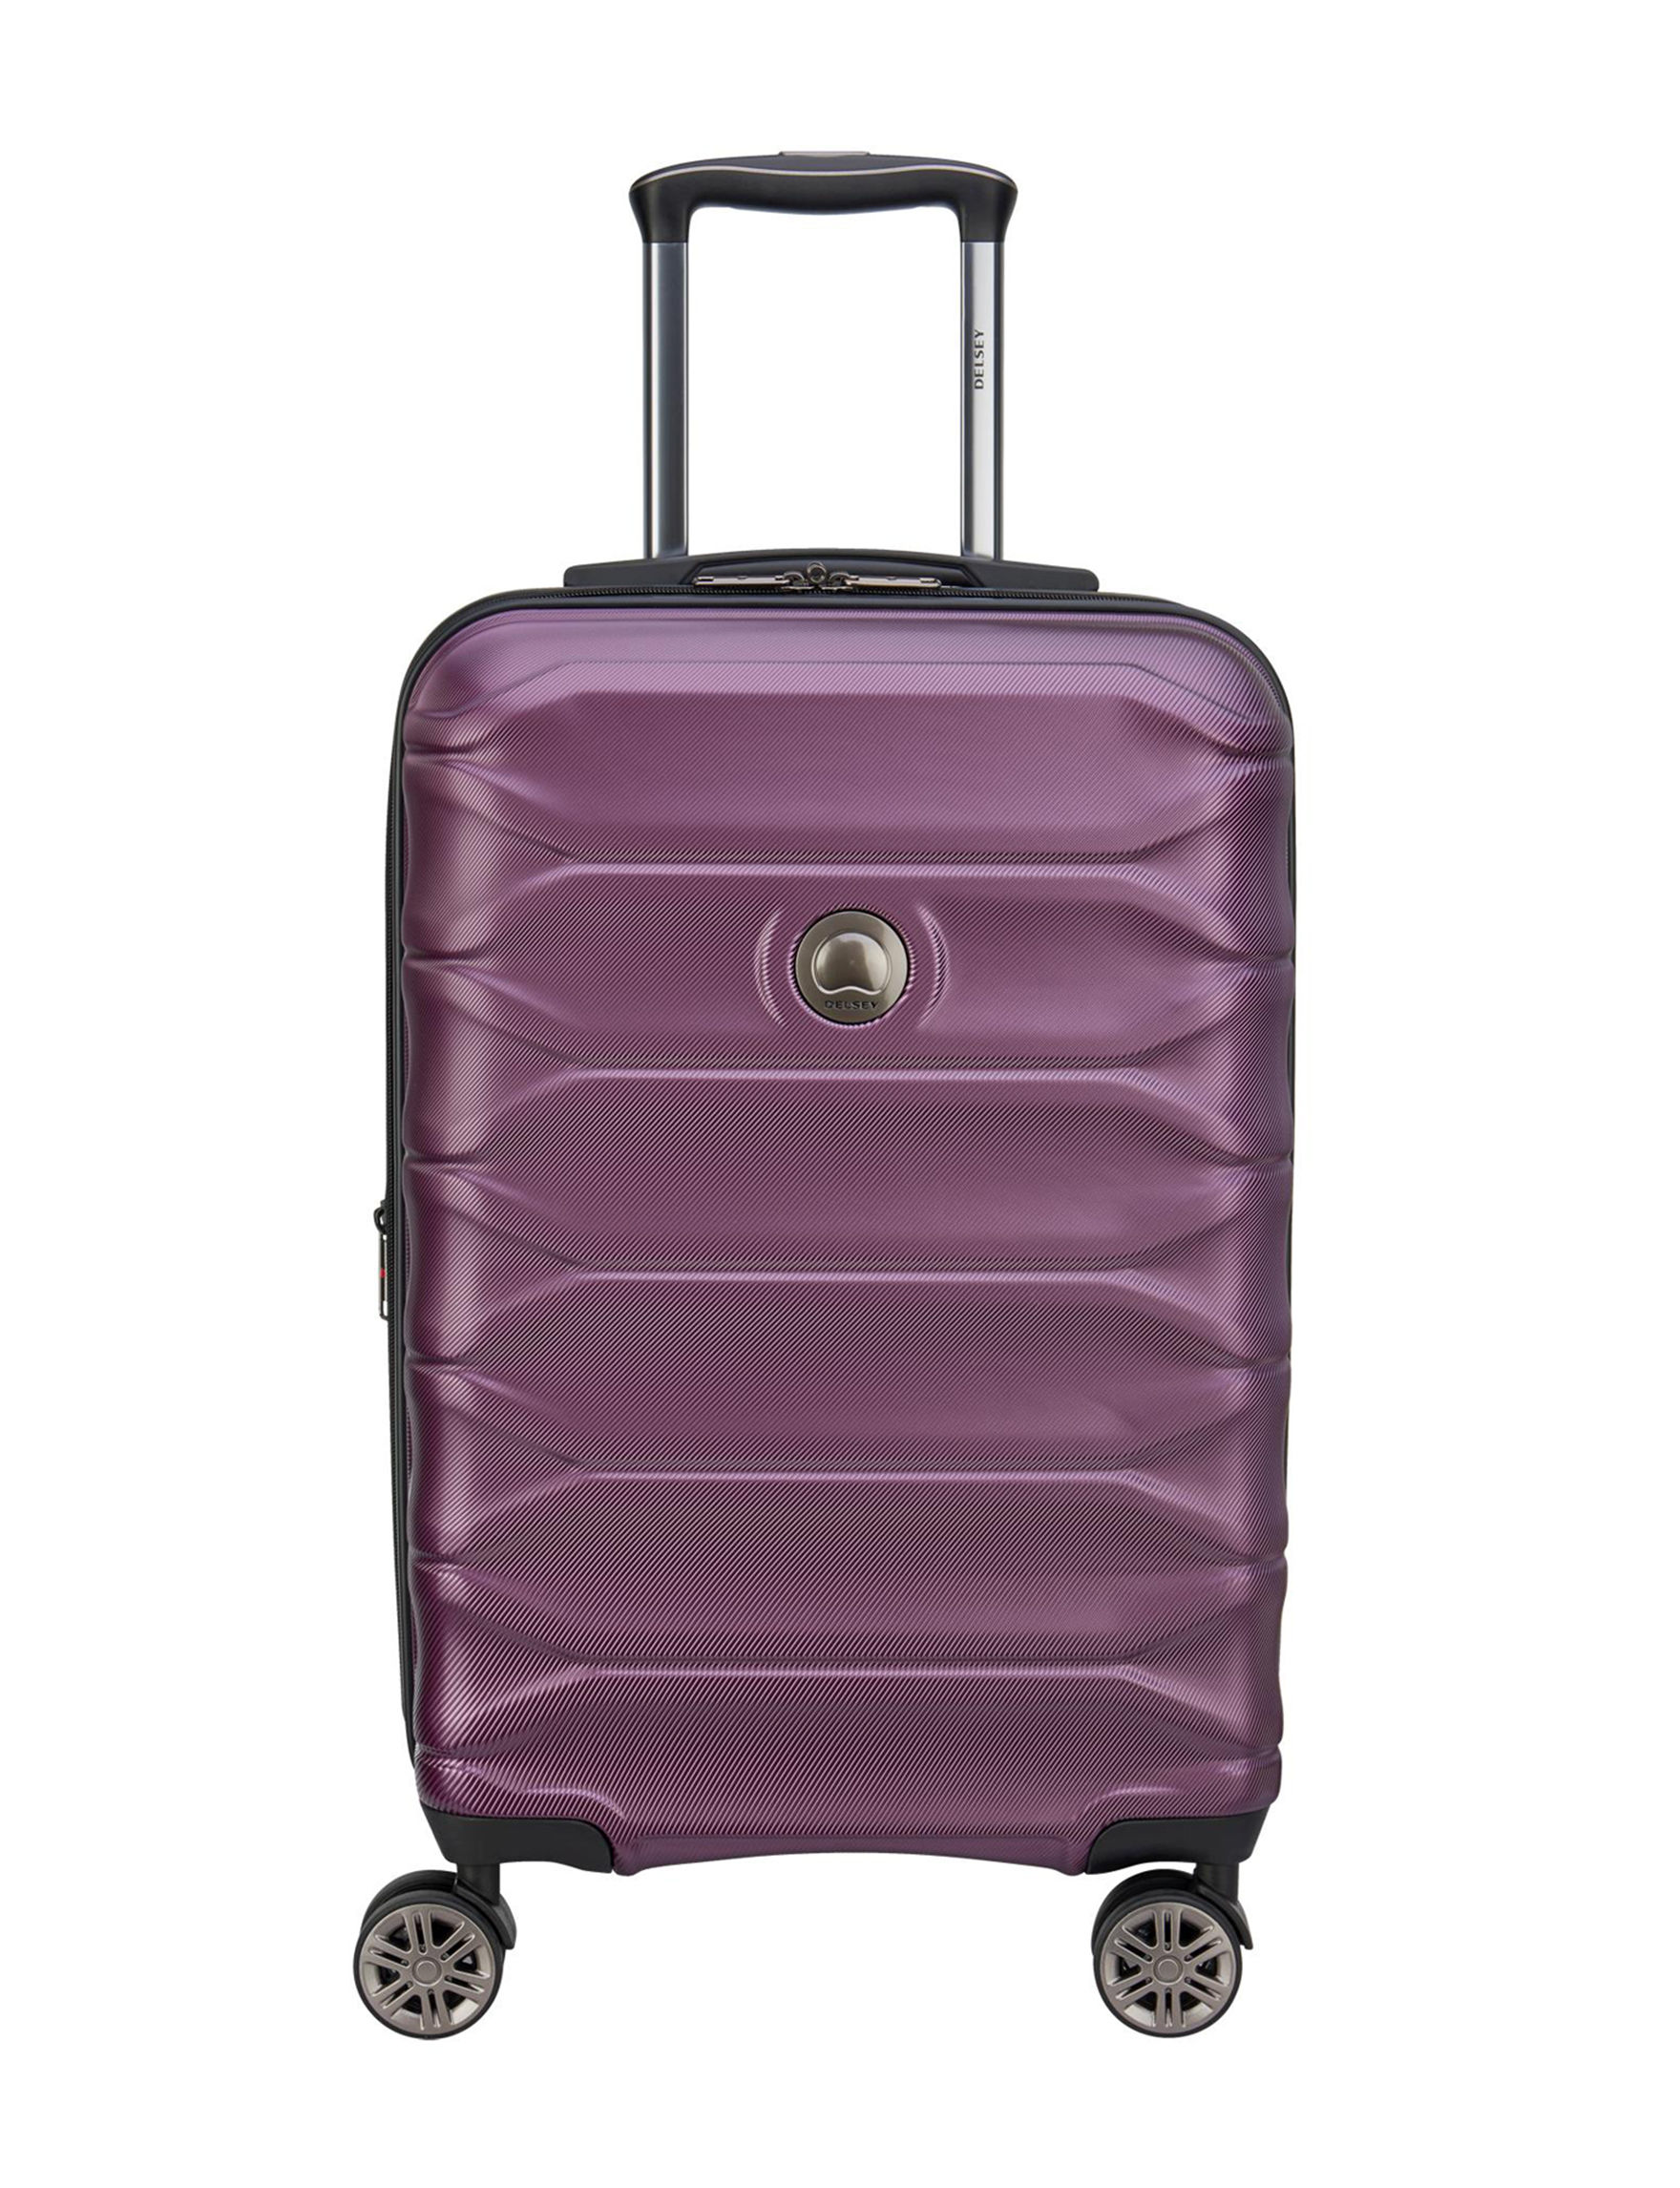 Delsey Purple Hardside Luggage Sets Upright Spinners